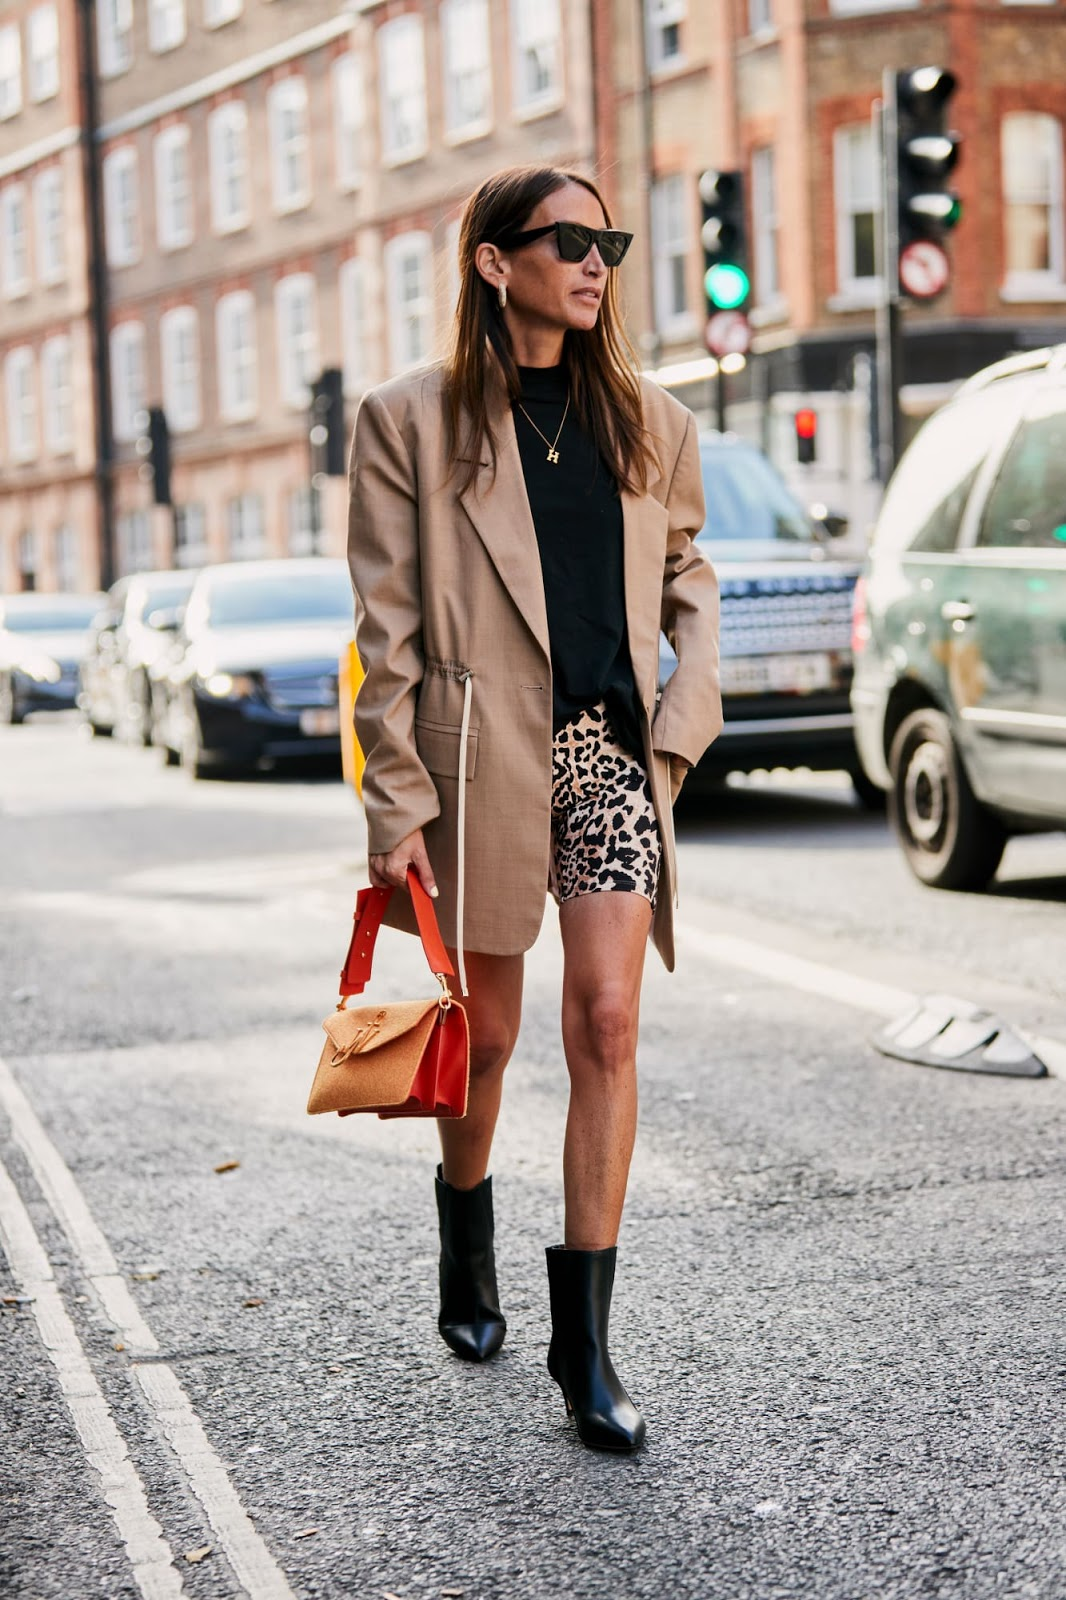 London Fashion: Chic Street Style Looks From Fashion Week